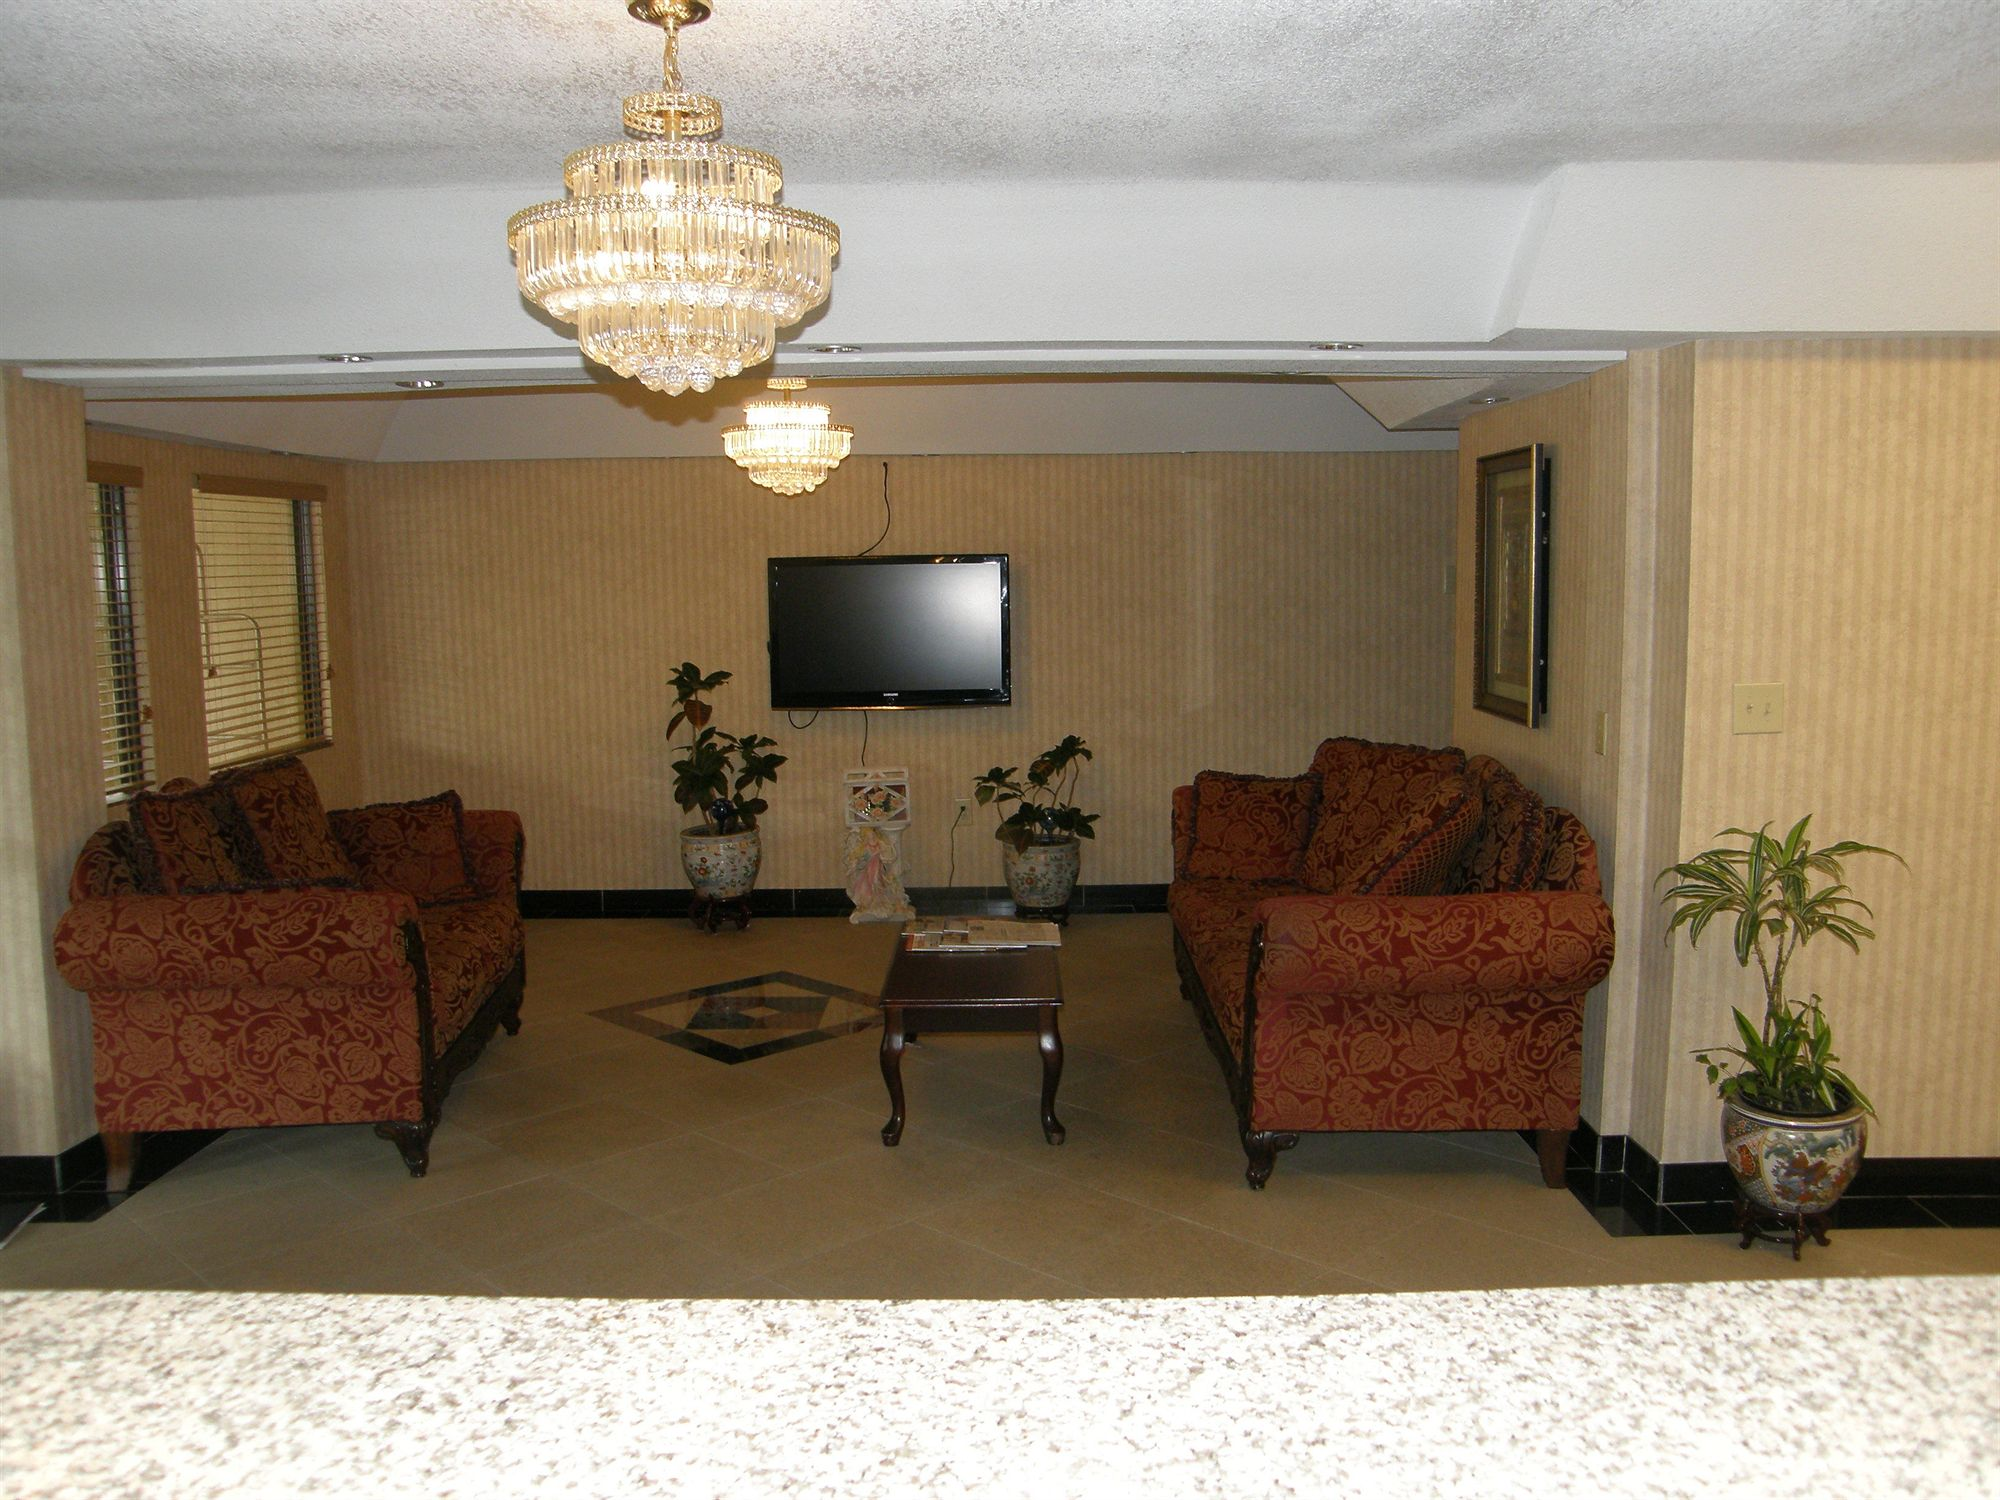 FairBridge Inn & Suites in McDonough, GA